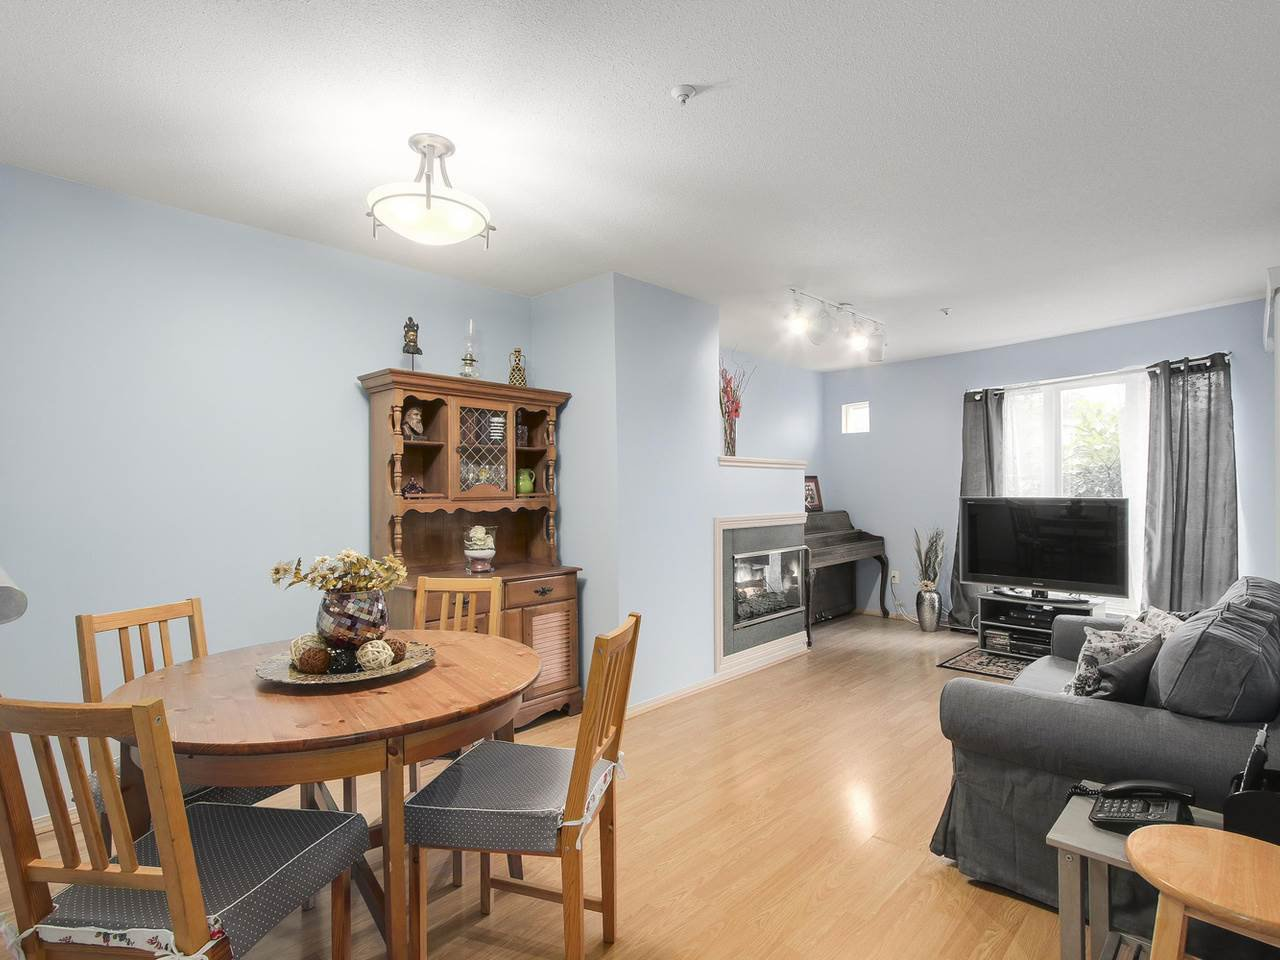 Main Photo: 103 2435 WELCHER AVENUE in Port Coquitlam: Central Pt Coquitlam Condo for sale : MLS®# R2150464